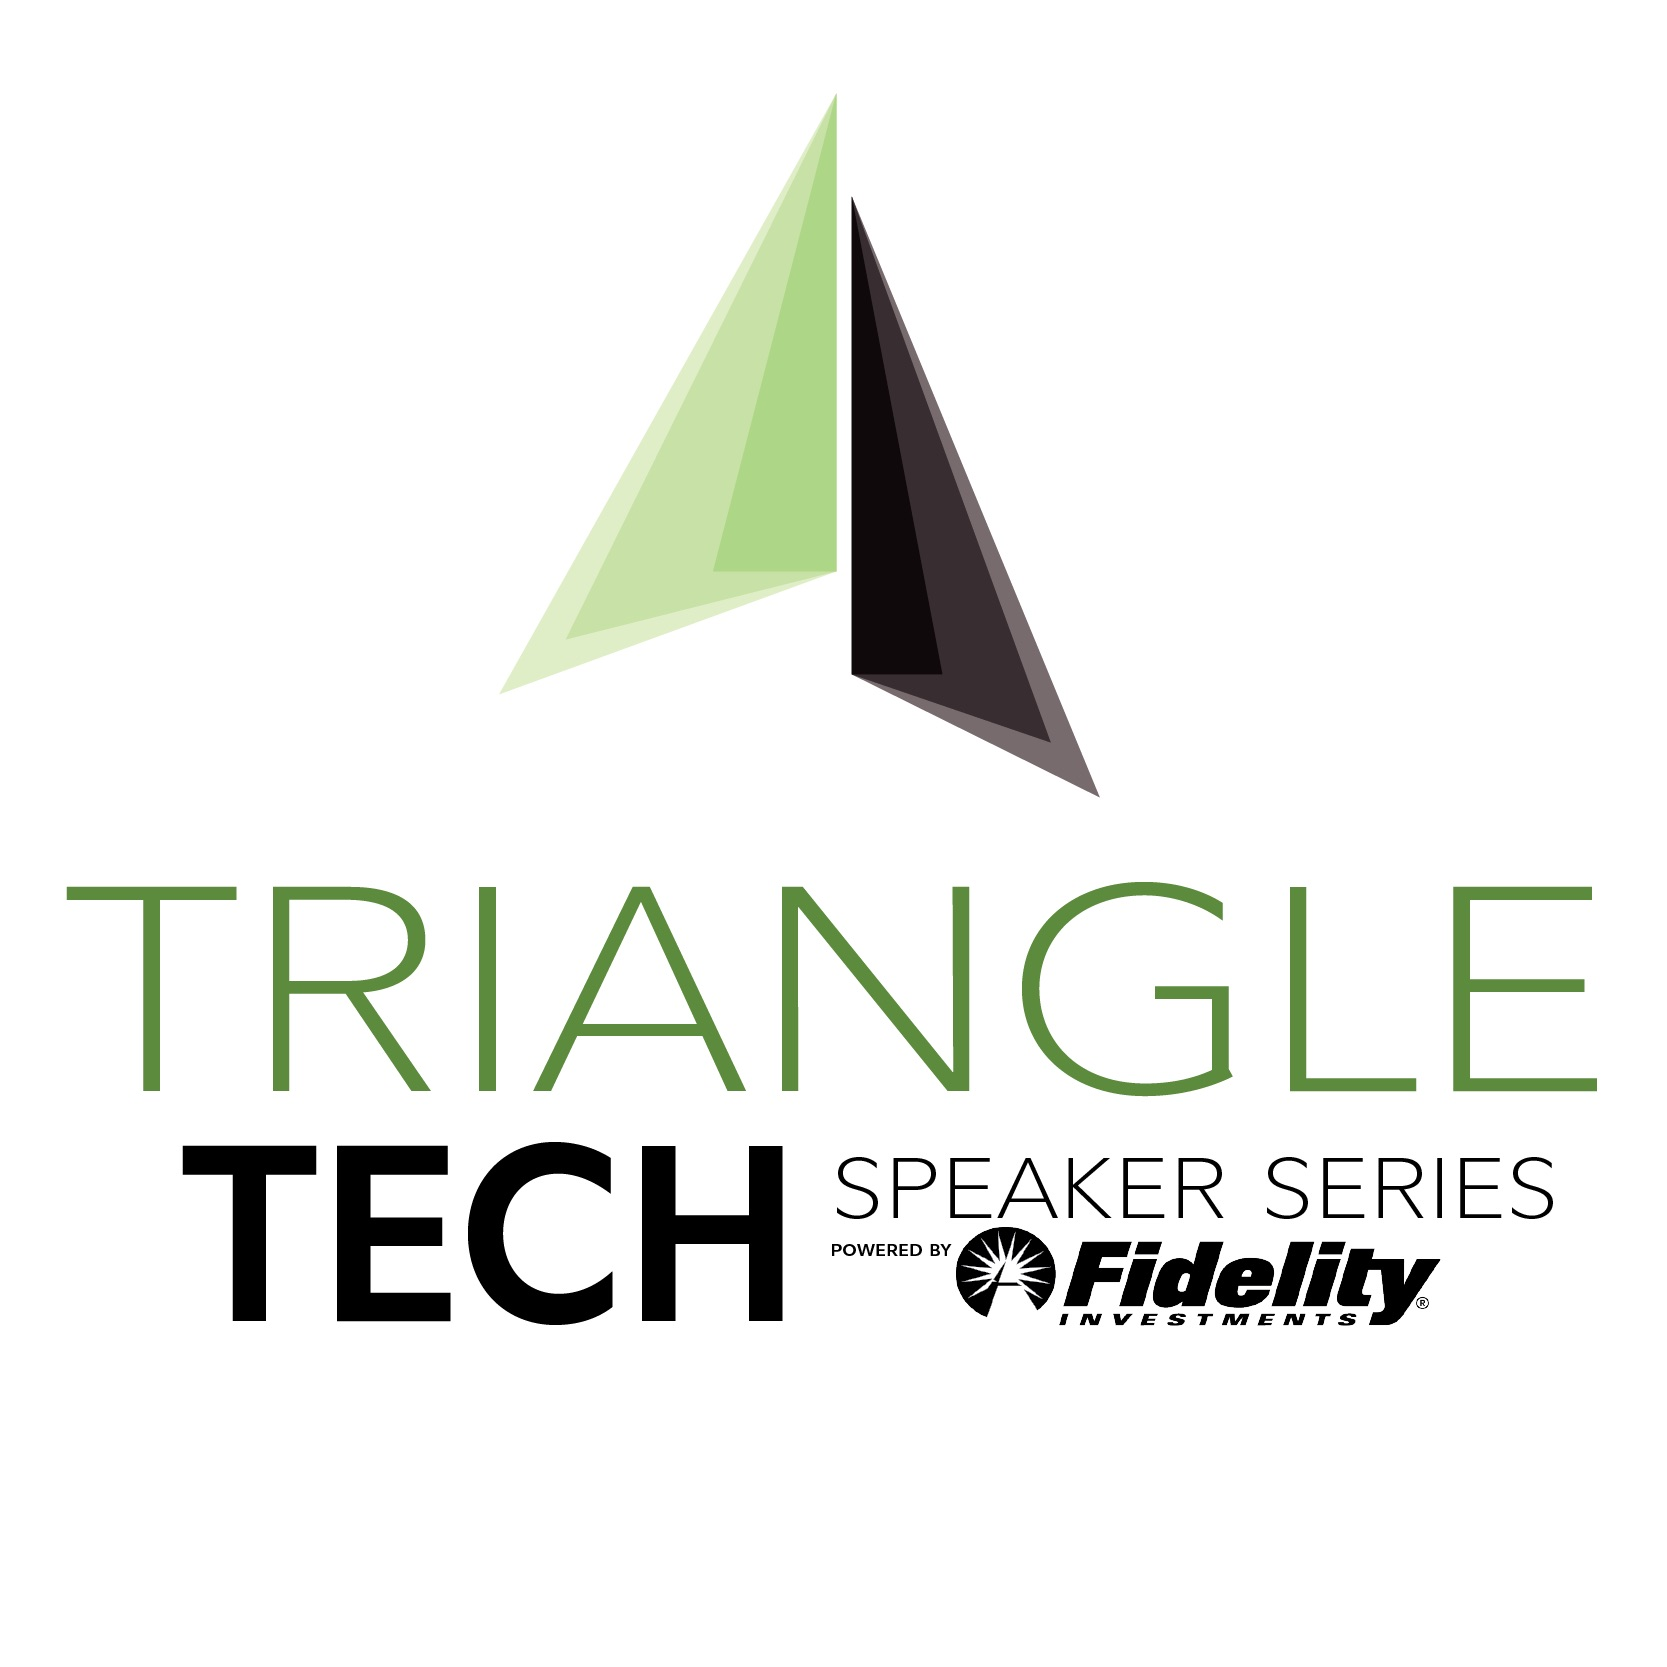 Five healthcare and technology experts shed light on critical industry trends during Wednesday's #TriangleTechSpeakerSeries.